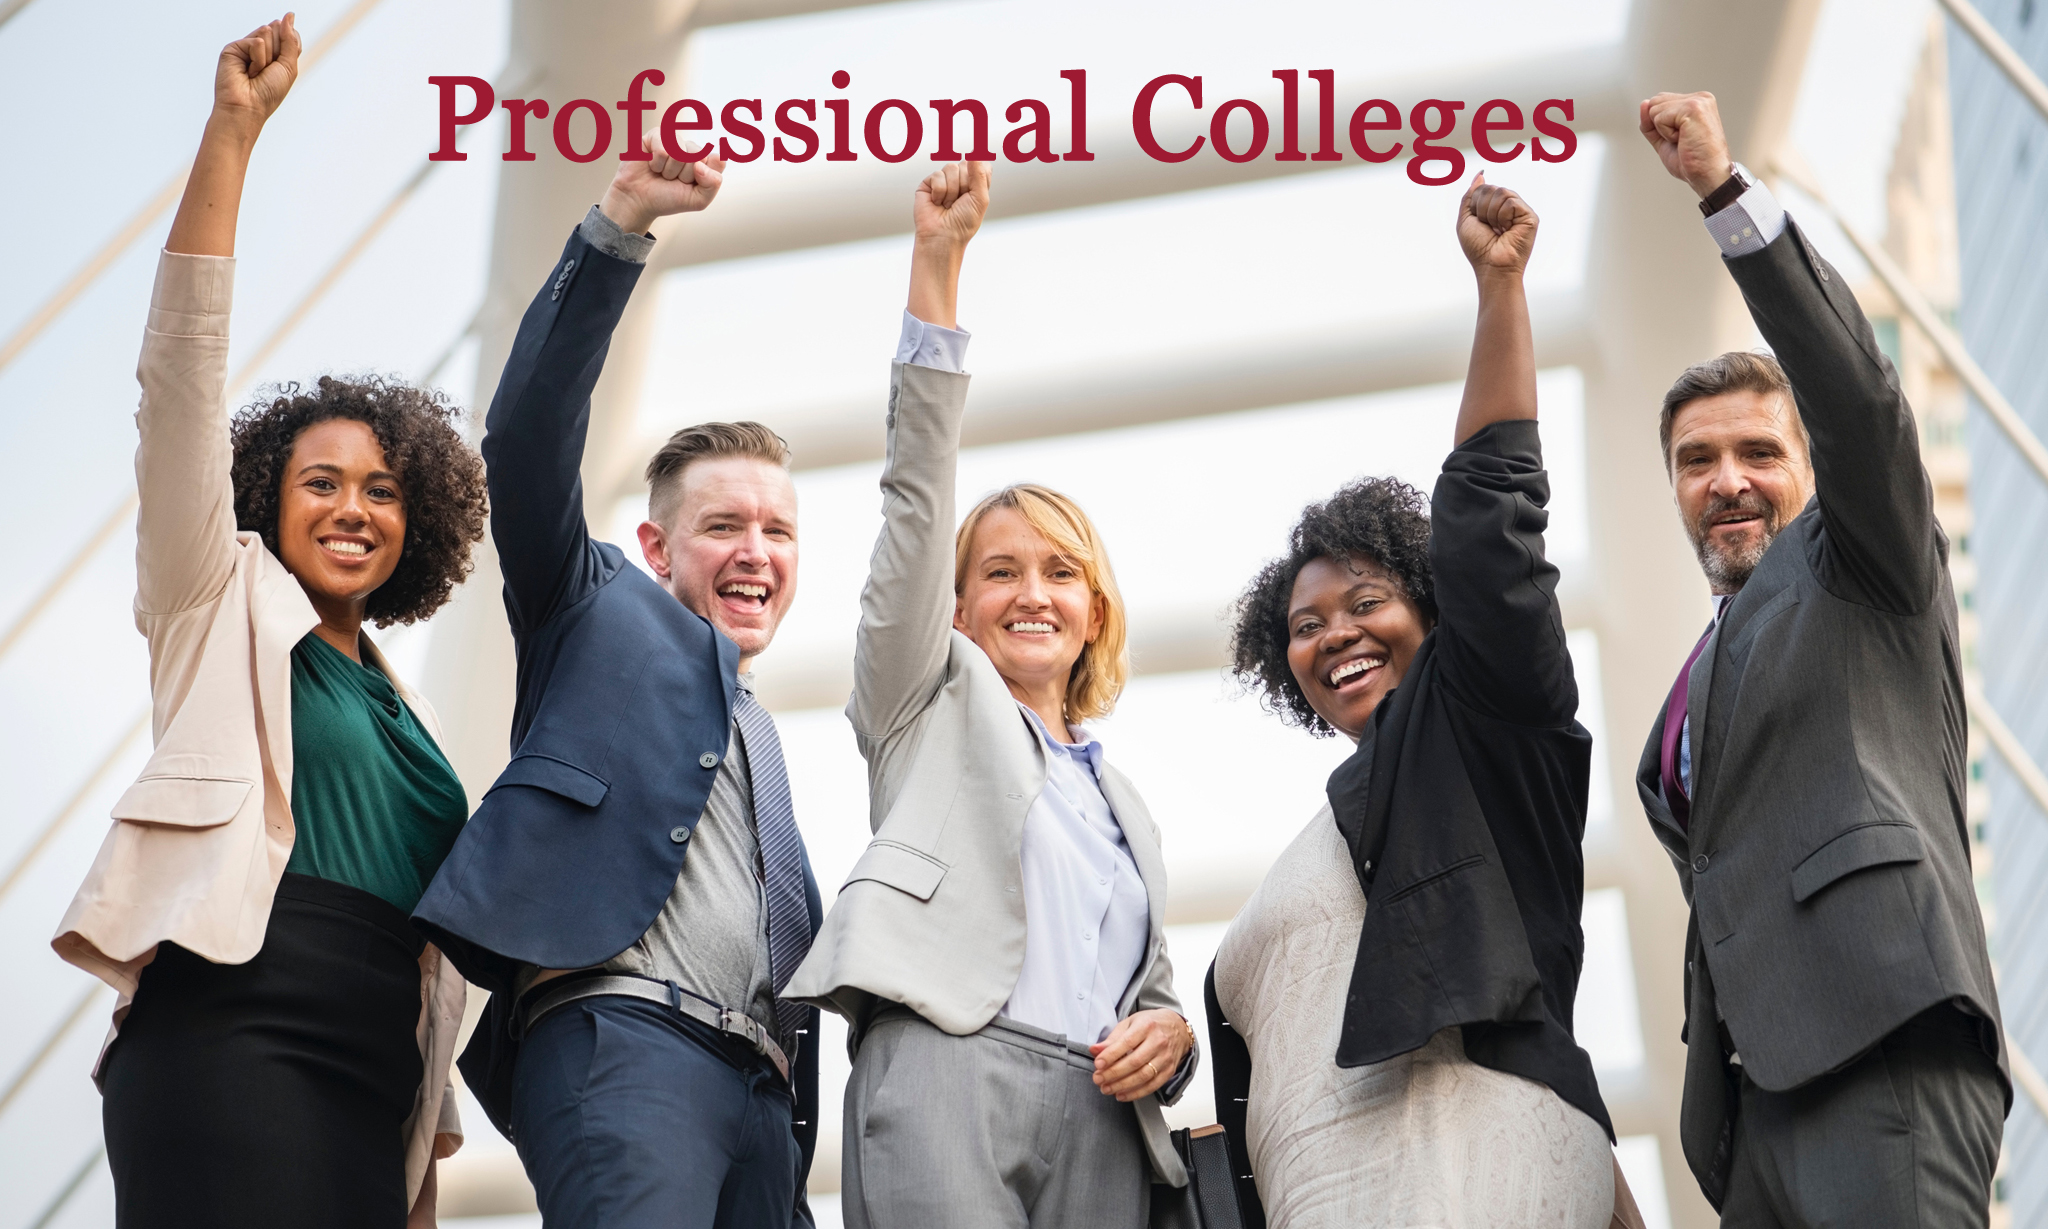 Registration In Professional Colleges